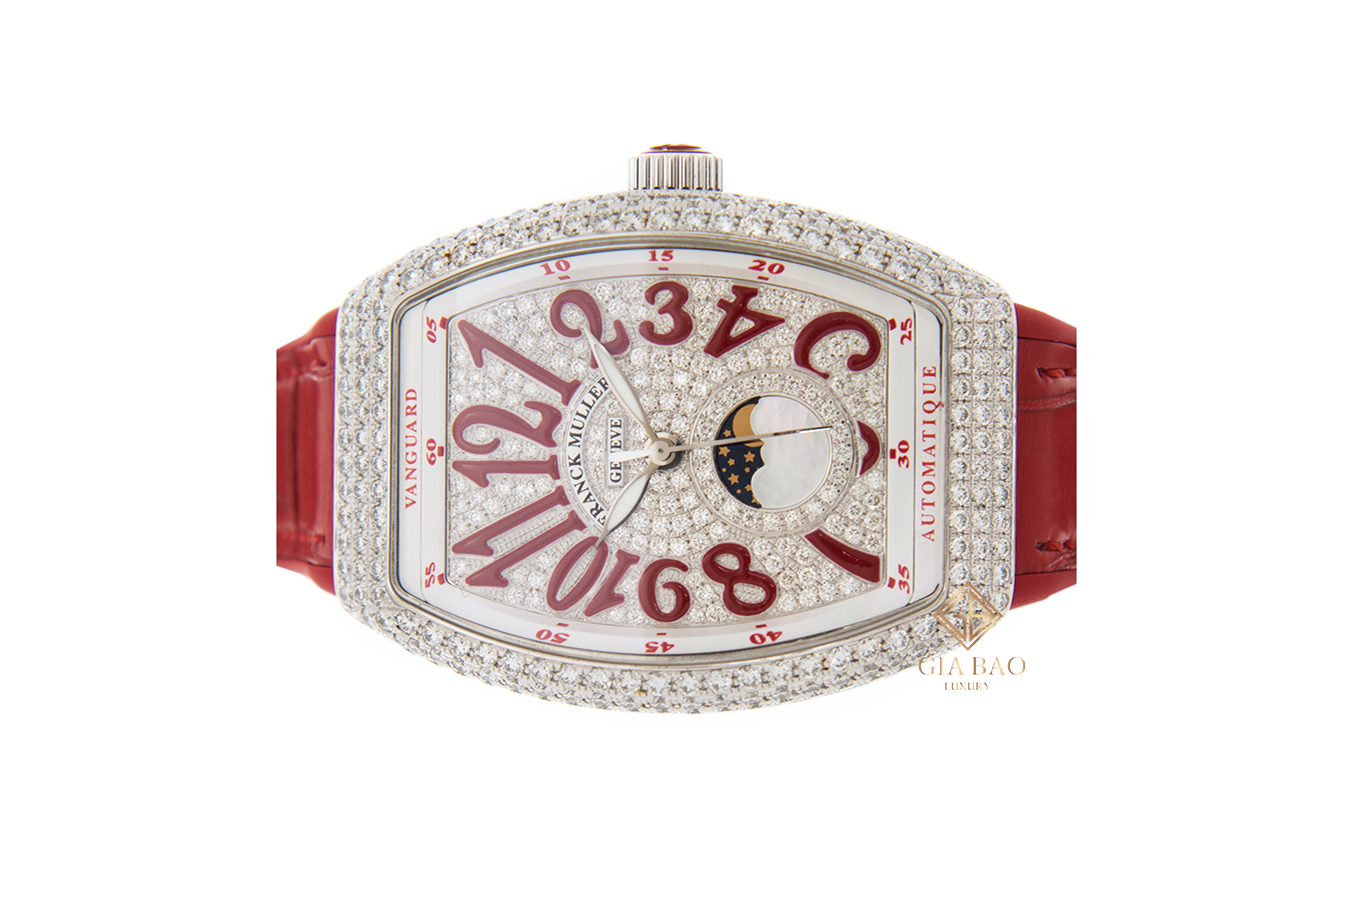 Đồng Hồ Franck Muller Ladies Collection V 32 SC AT FO LD CD (AC.RG)